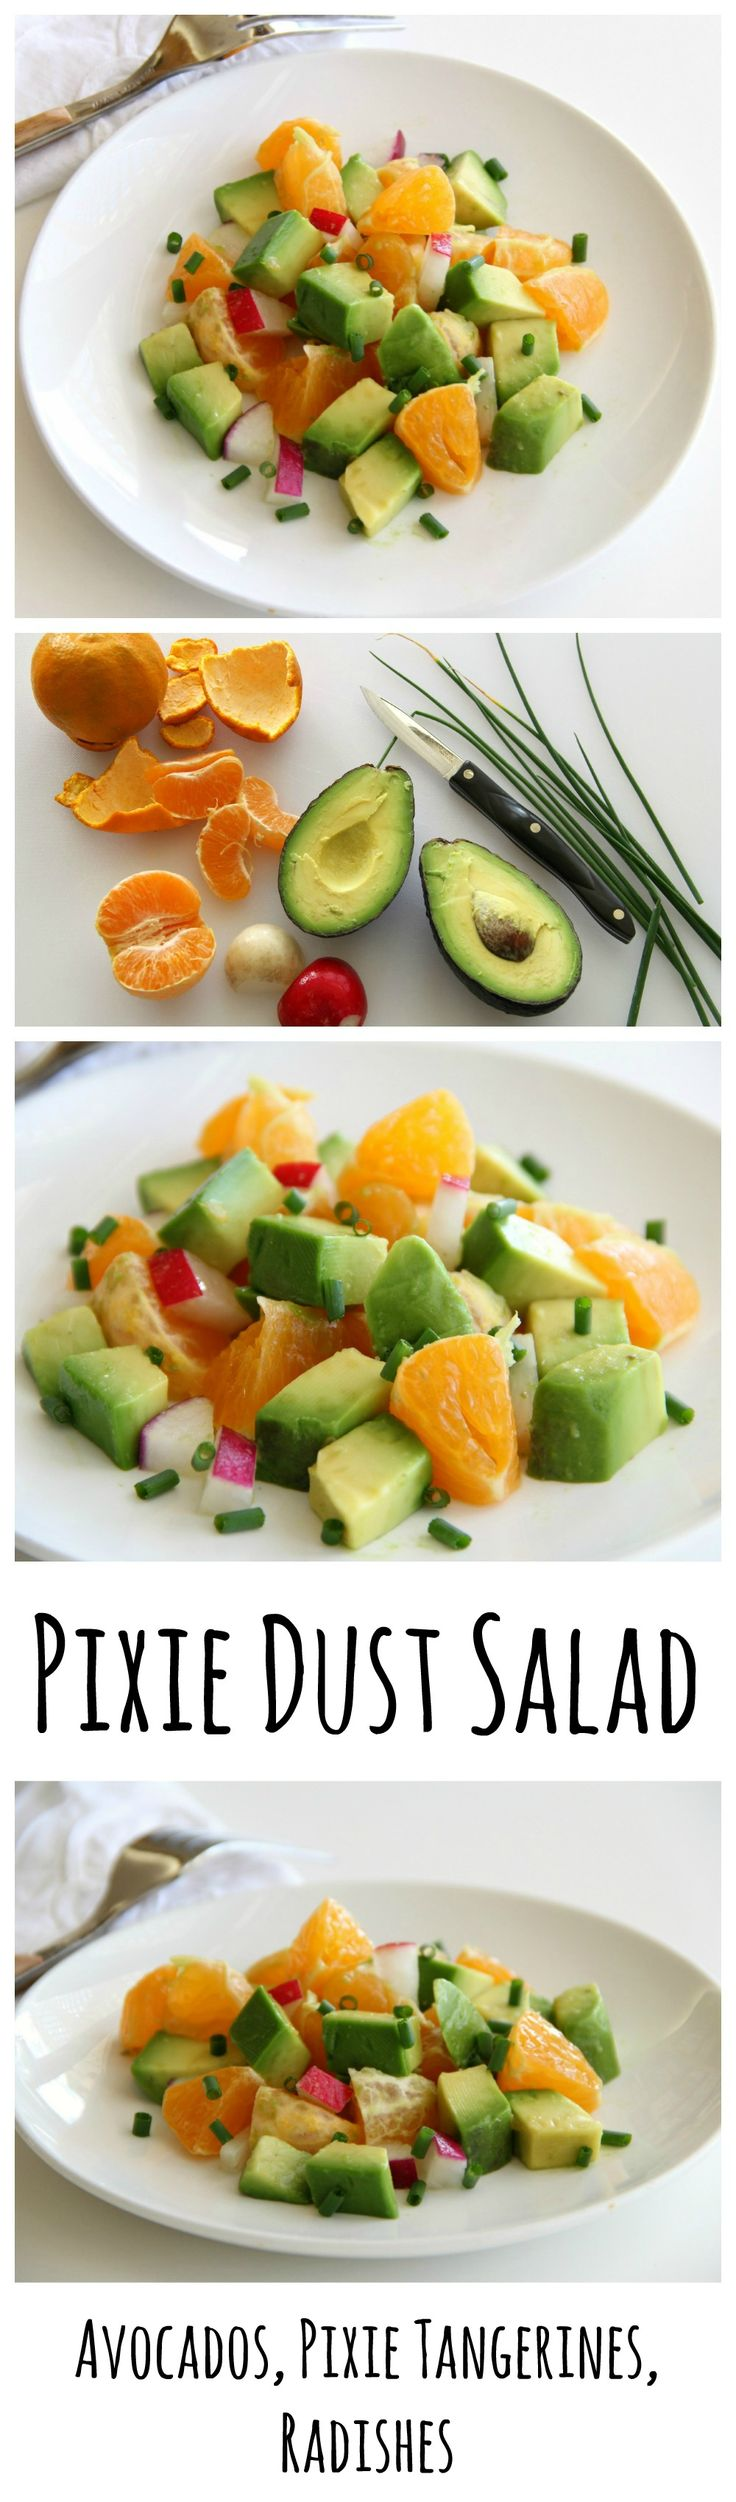 Pixie Dust Salad: California-style salad in which creamy avocado meets super sweet Ojai Pixie tangerines and crunchy radishes in the presence of cumin and chives and vanilla salad dressing. Magic ensues!